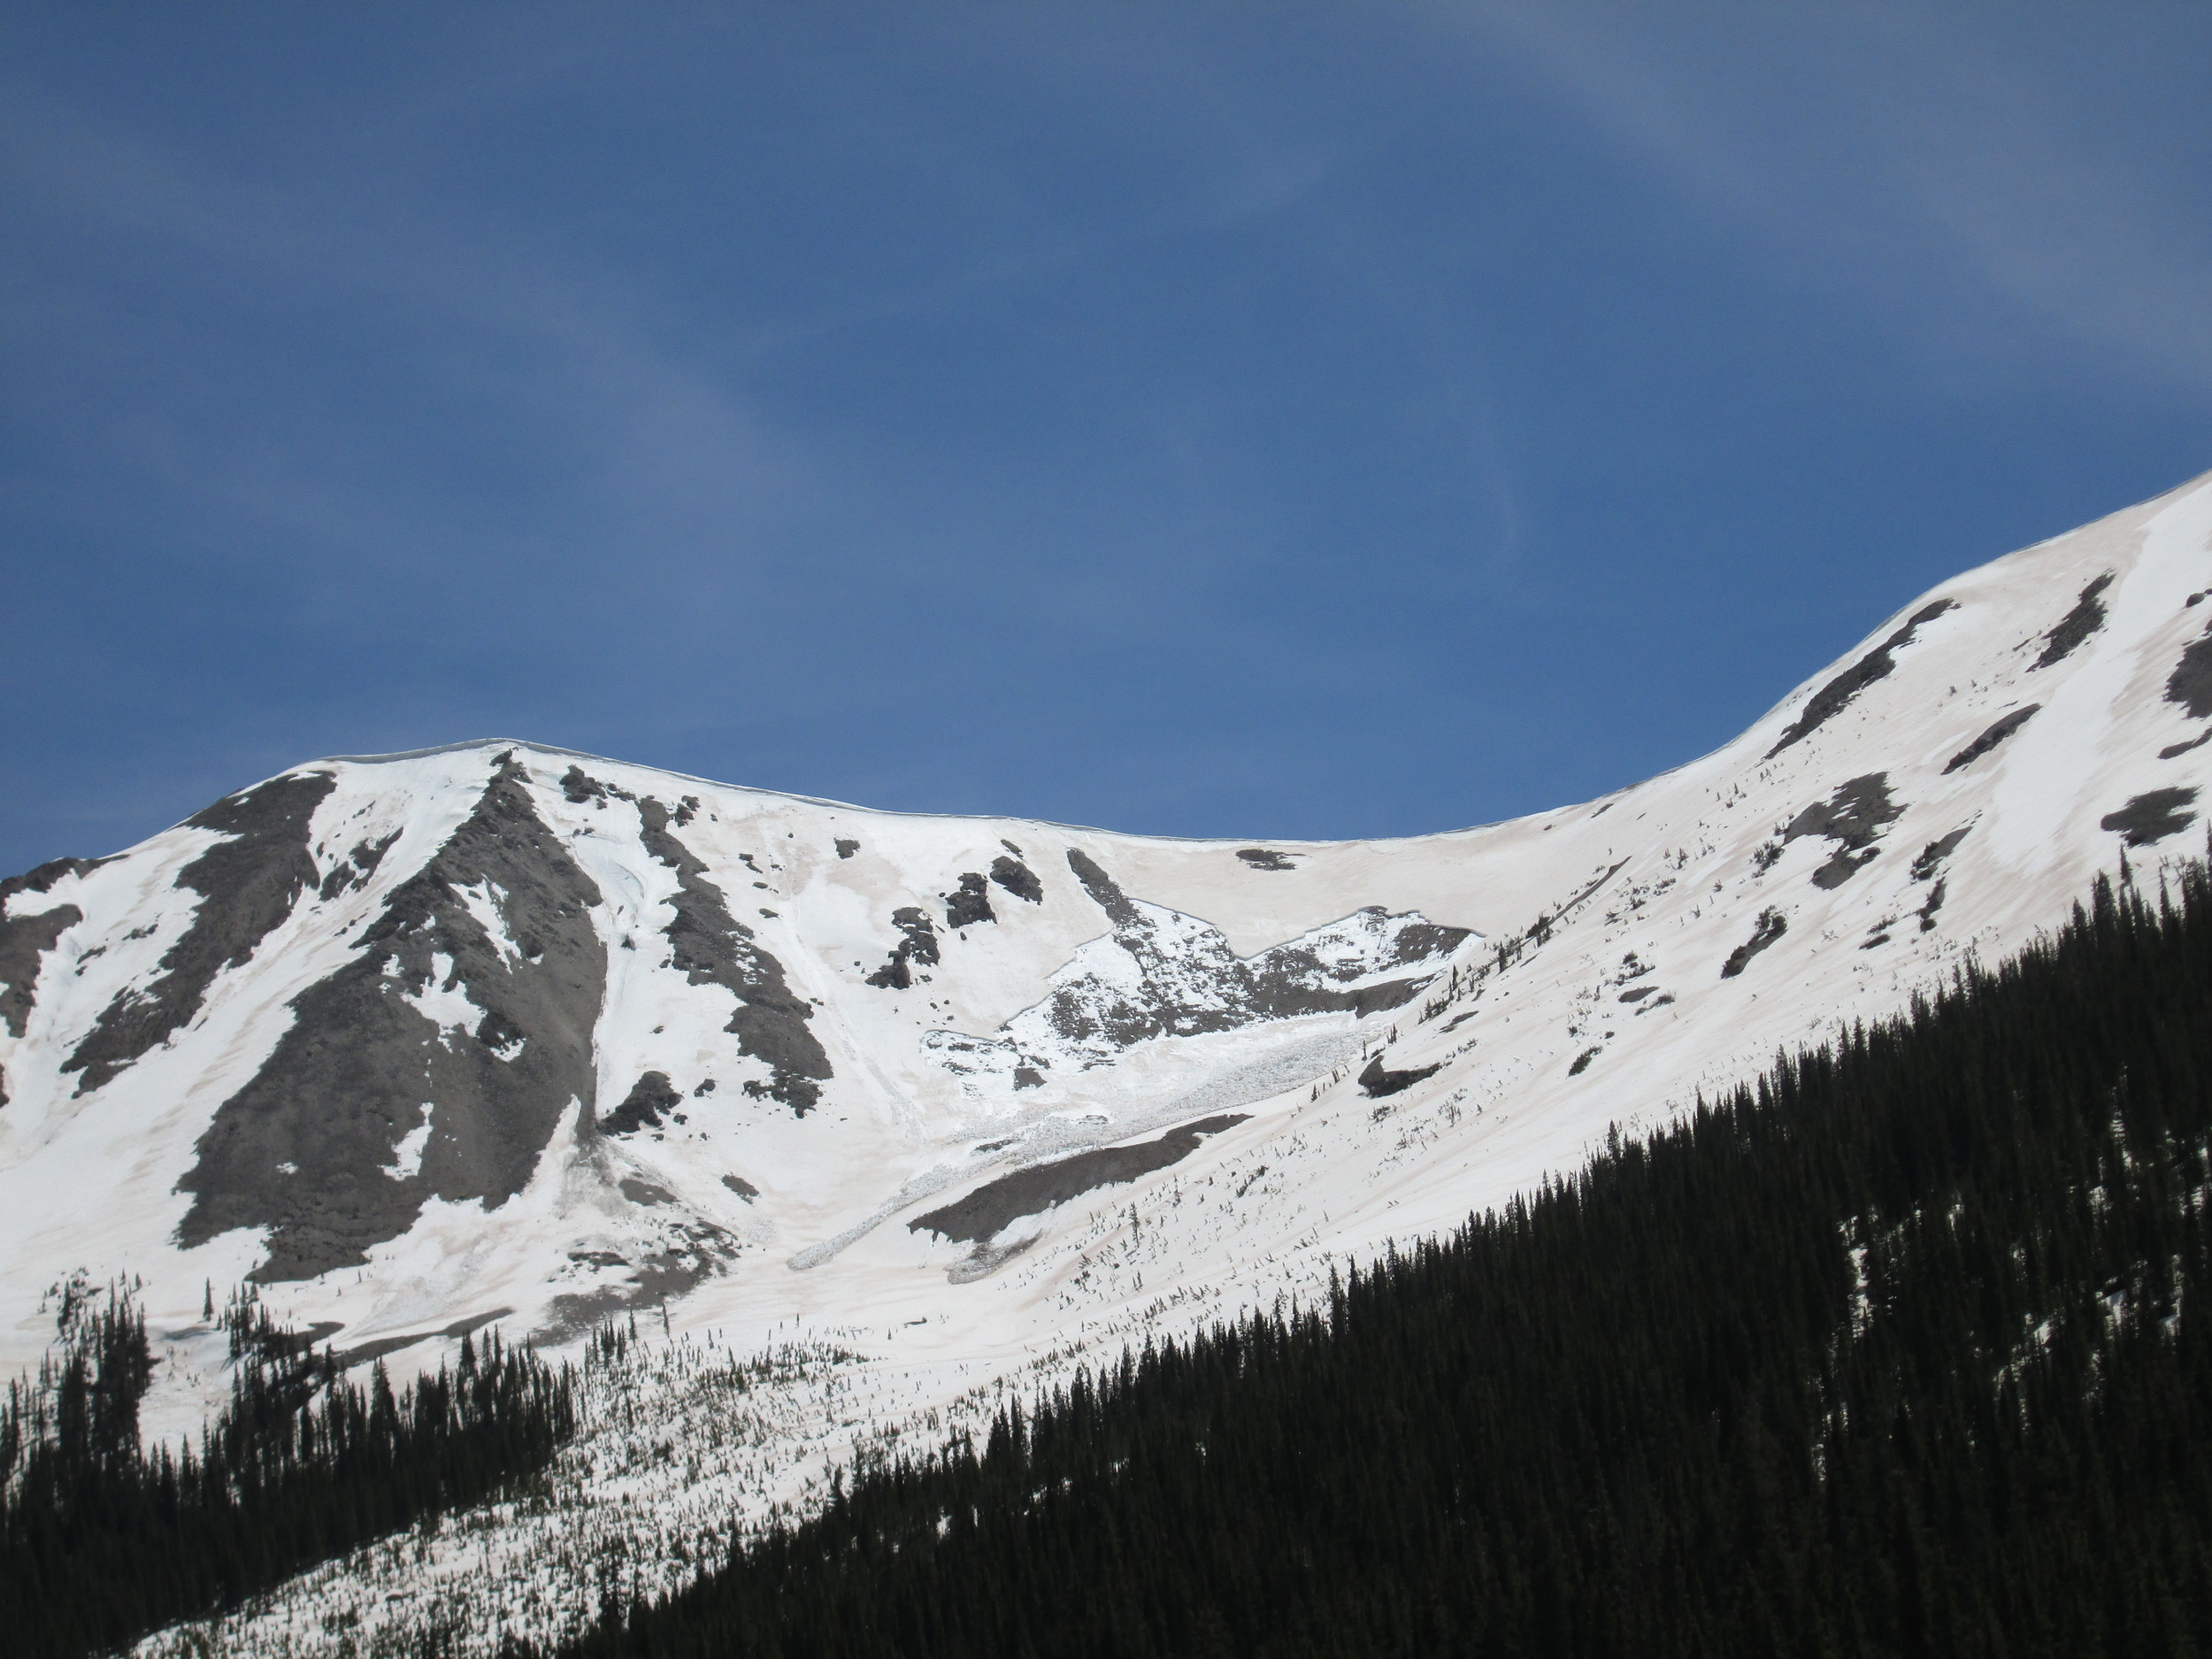 """A fresh """"wet slab"""" avalanche was observed on a north aspect just above the ghost town of Independence. High snowmelt rates produced by dust at the snowpack surface, and the resulting intense flux of free water into the snowpack structure, can contribute to this type of very dangerous spring avalanche activity."""